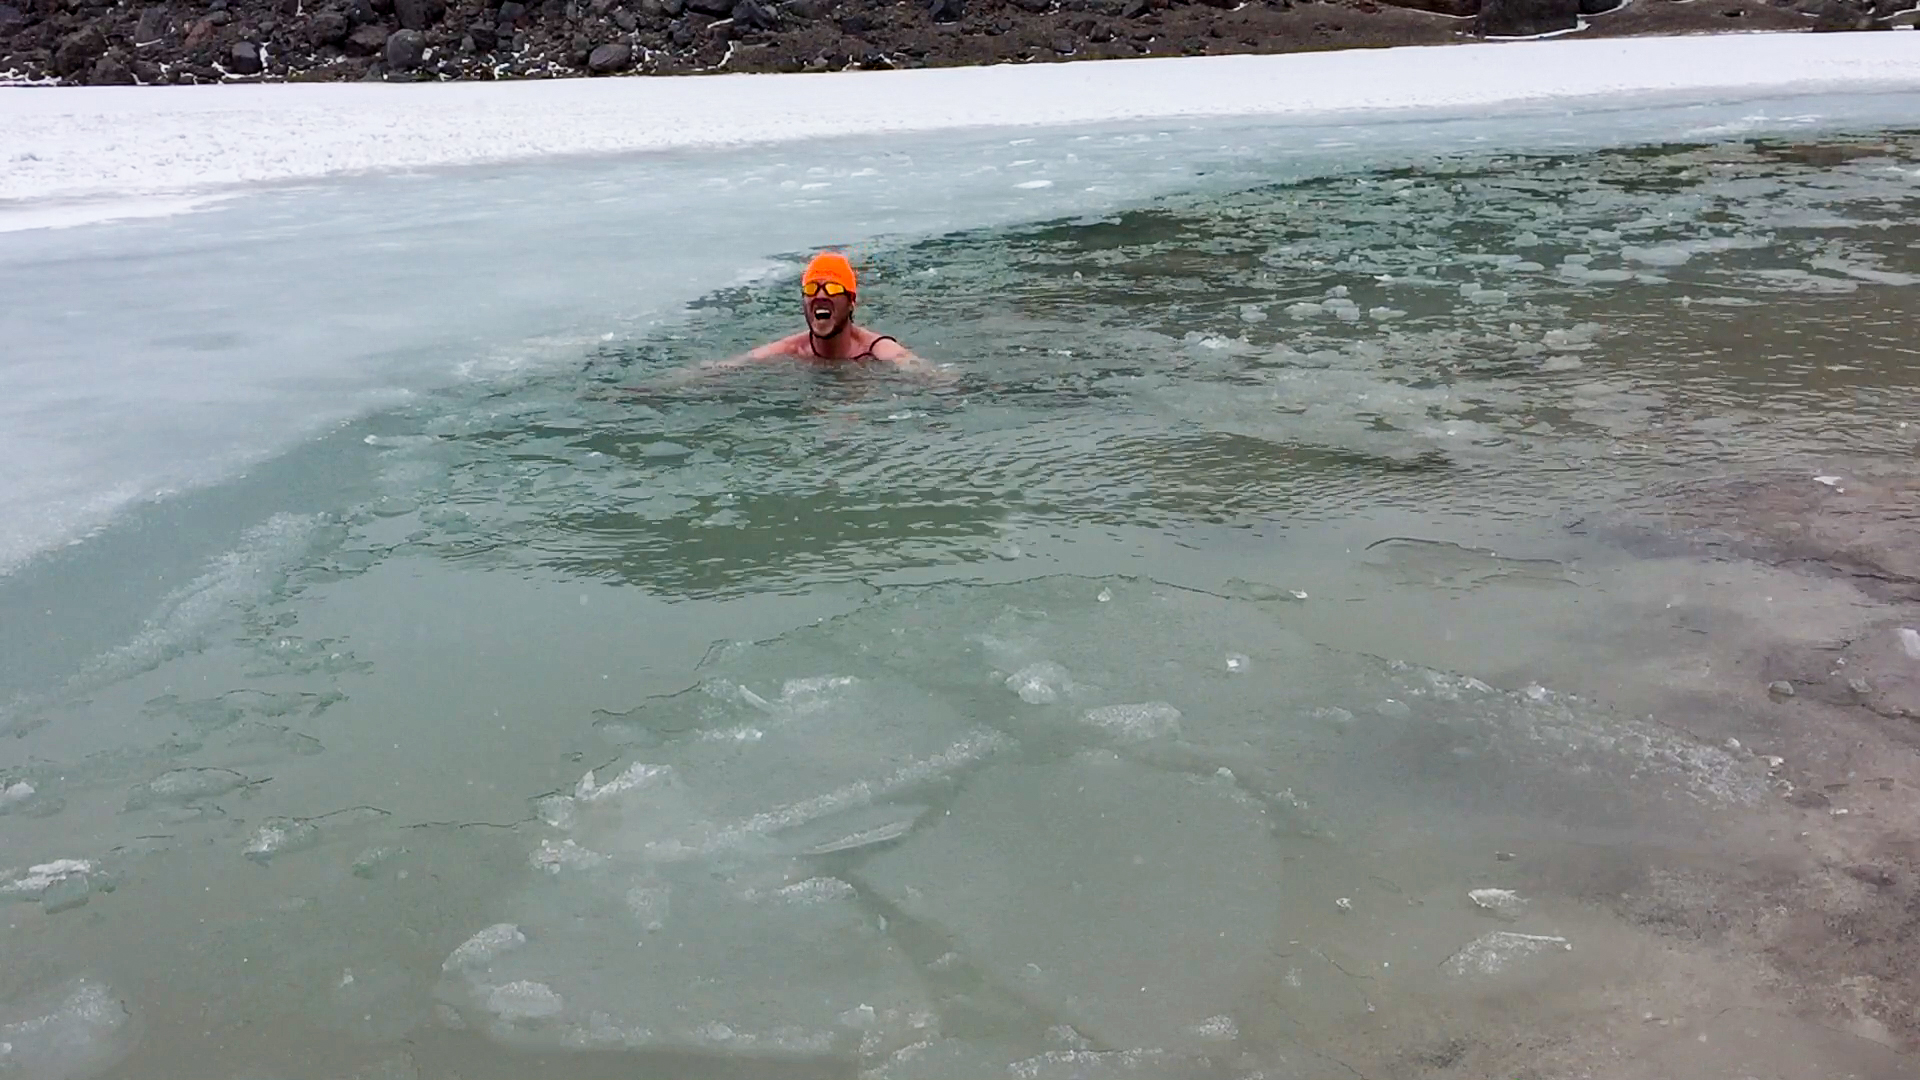 dan swimming in the frozen lake